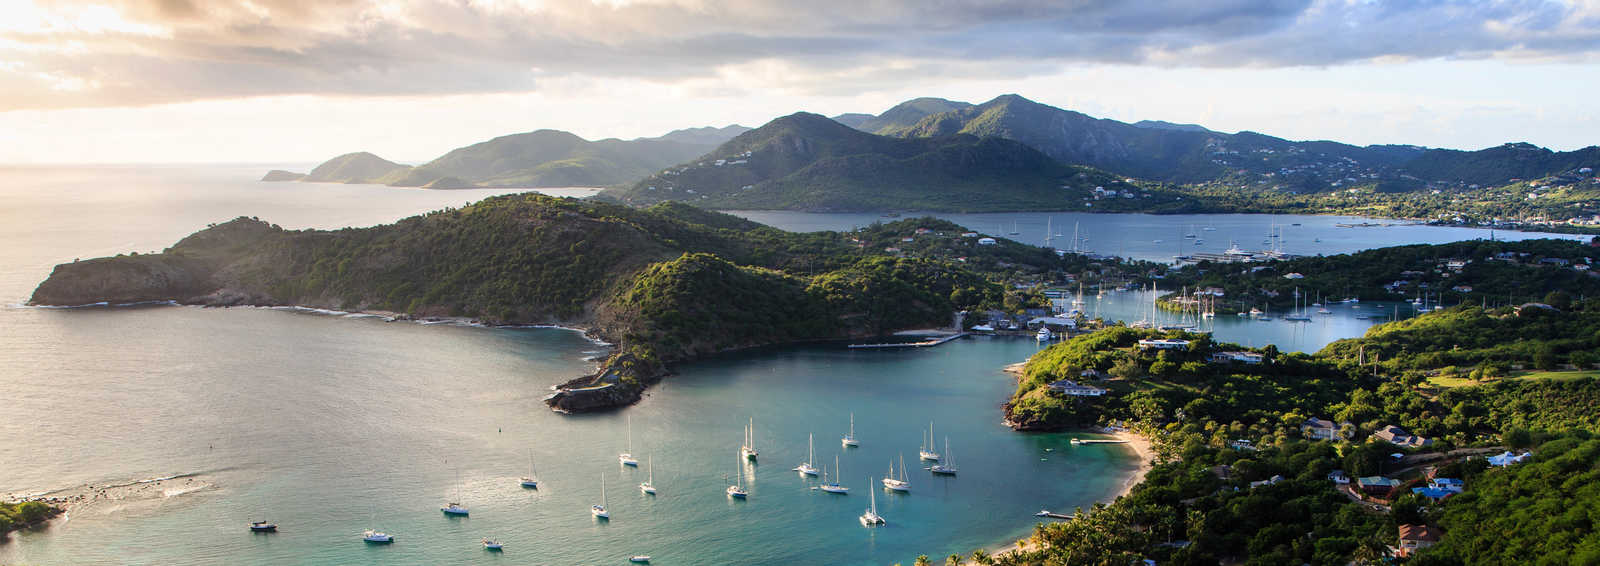 Sunset at English Harbor, Antigua